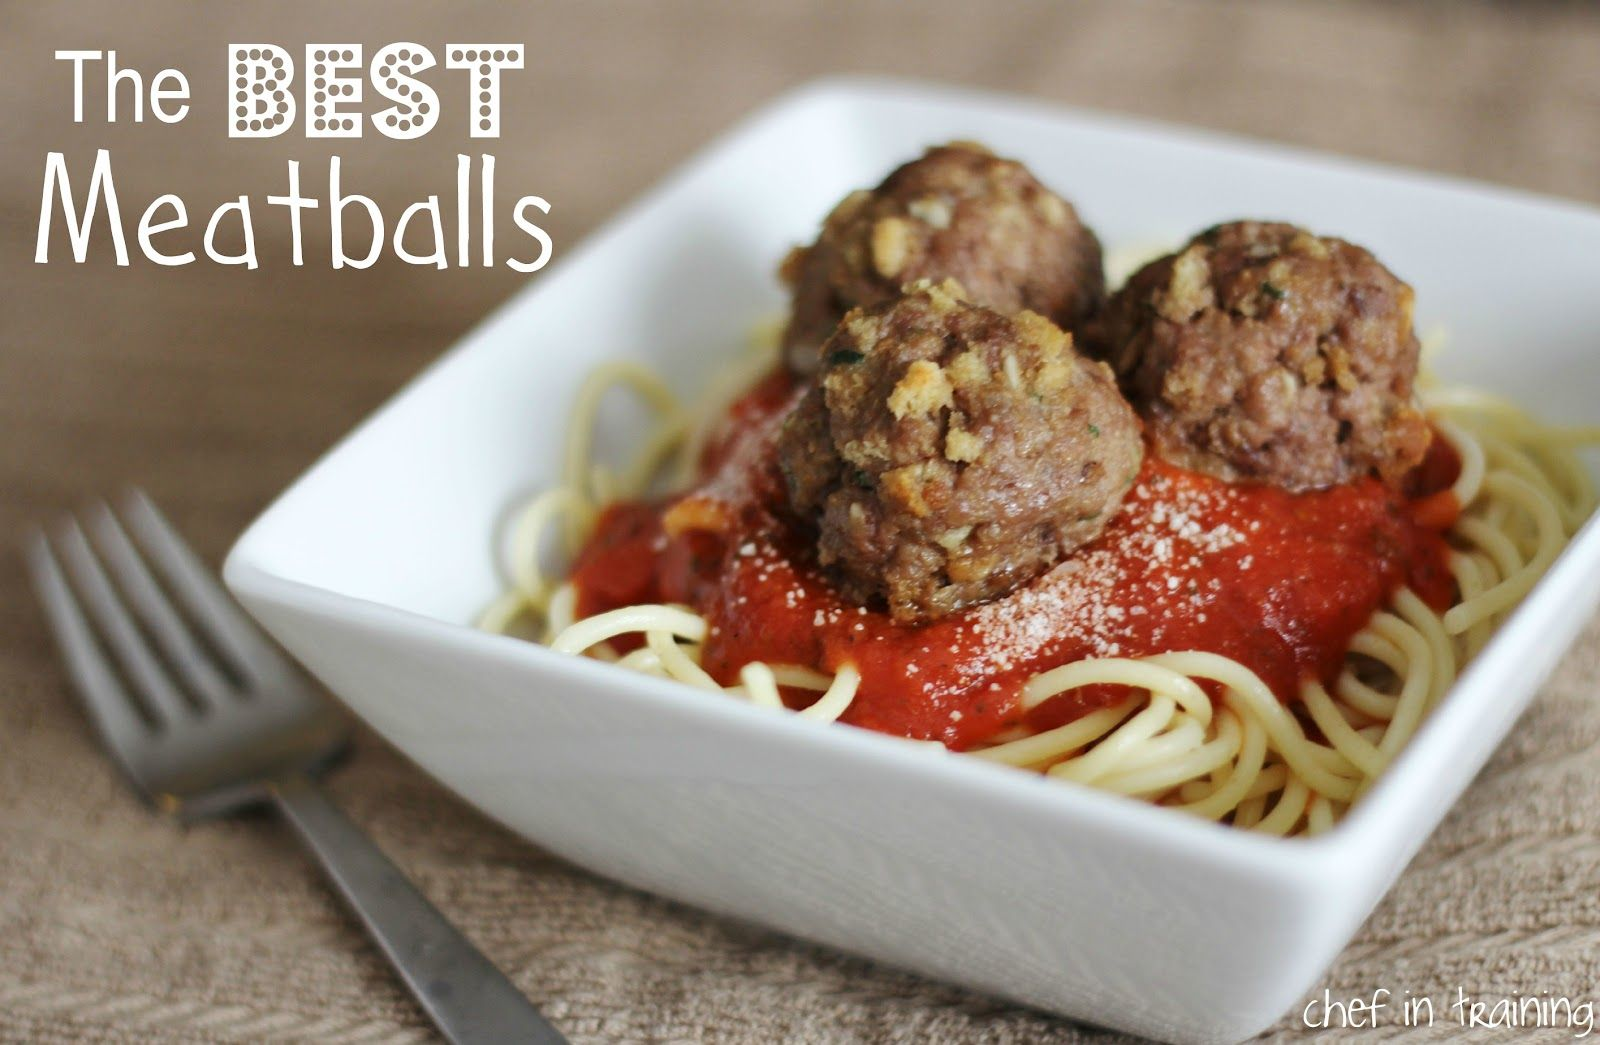 The Best Meatballs!... They really do live up to their name! Delicious!